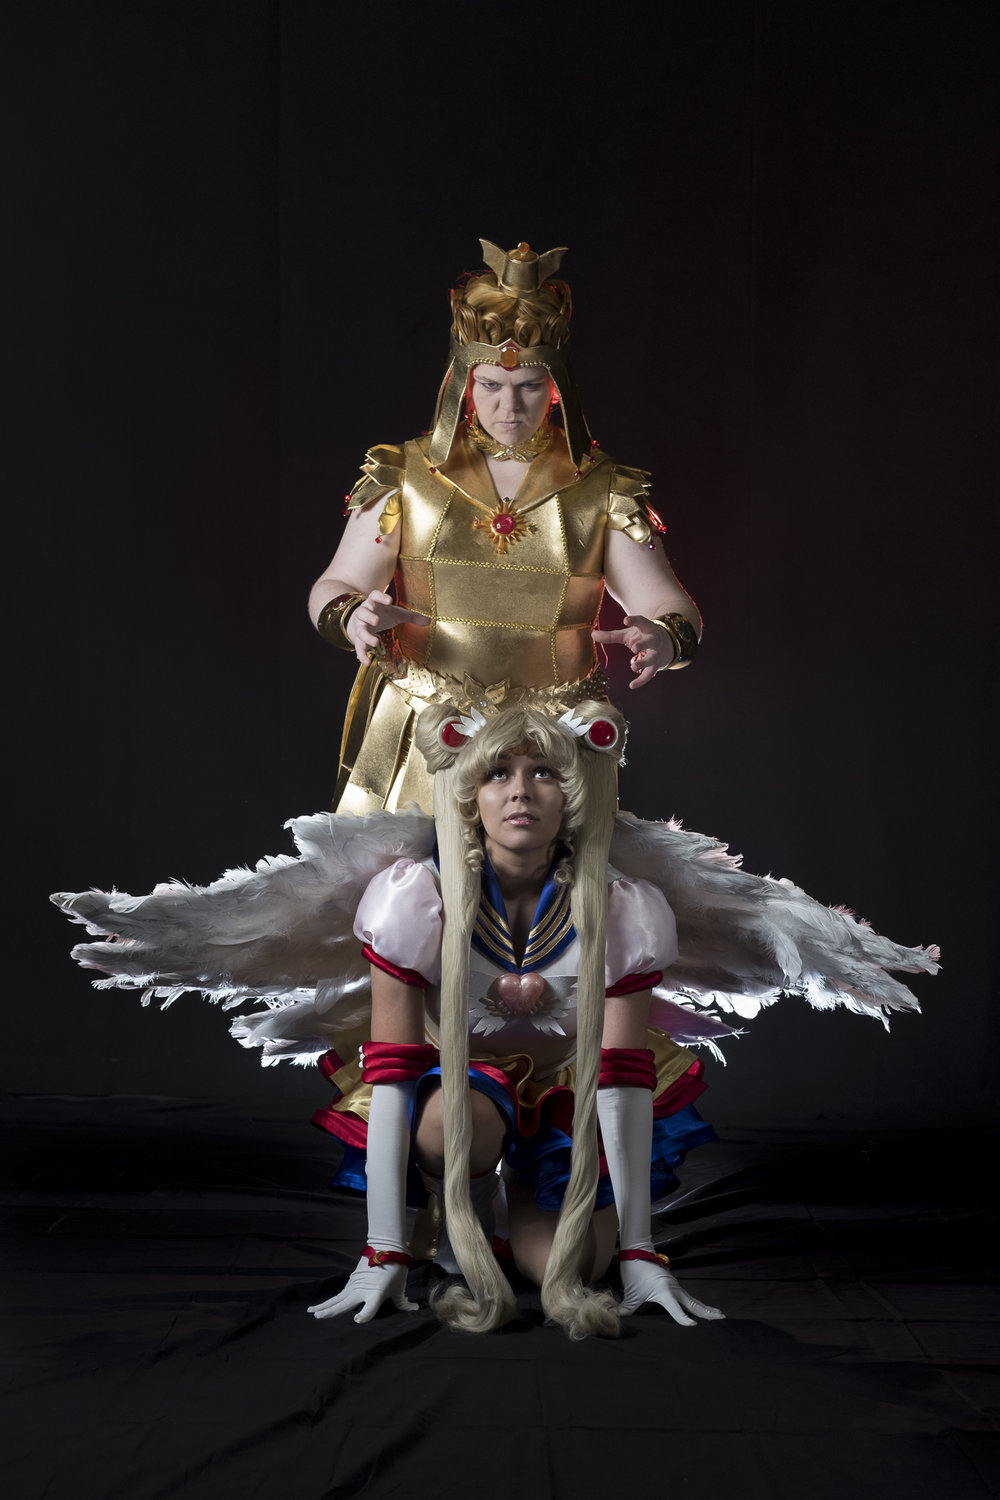 Tacocat Cosplay in Sailor Galaxia cosplay and Mermaid Child in Eternal Sailor Moon cosplay at Soundcheck Austin